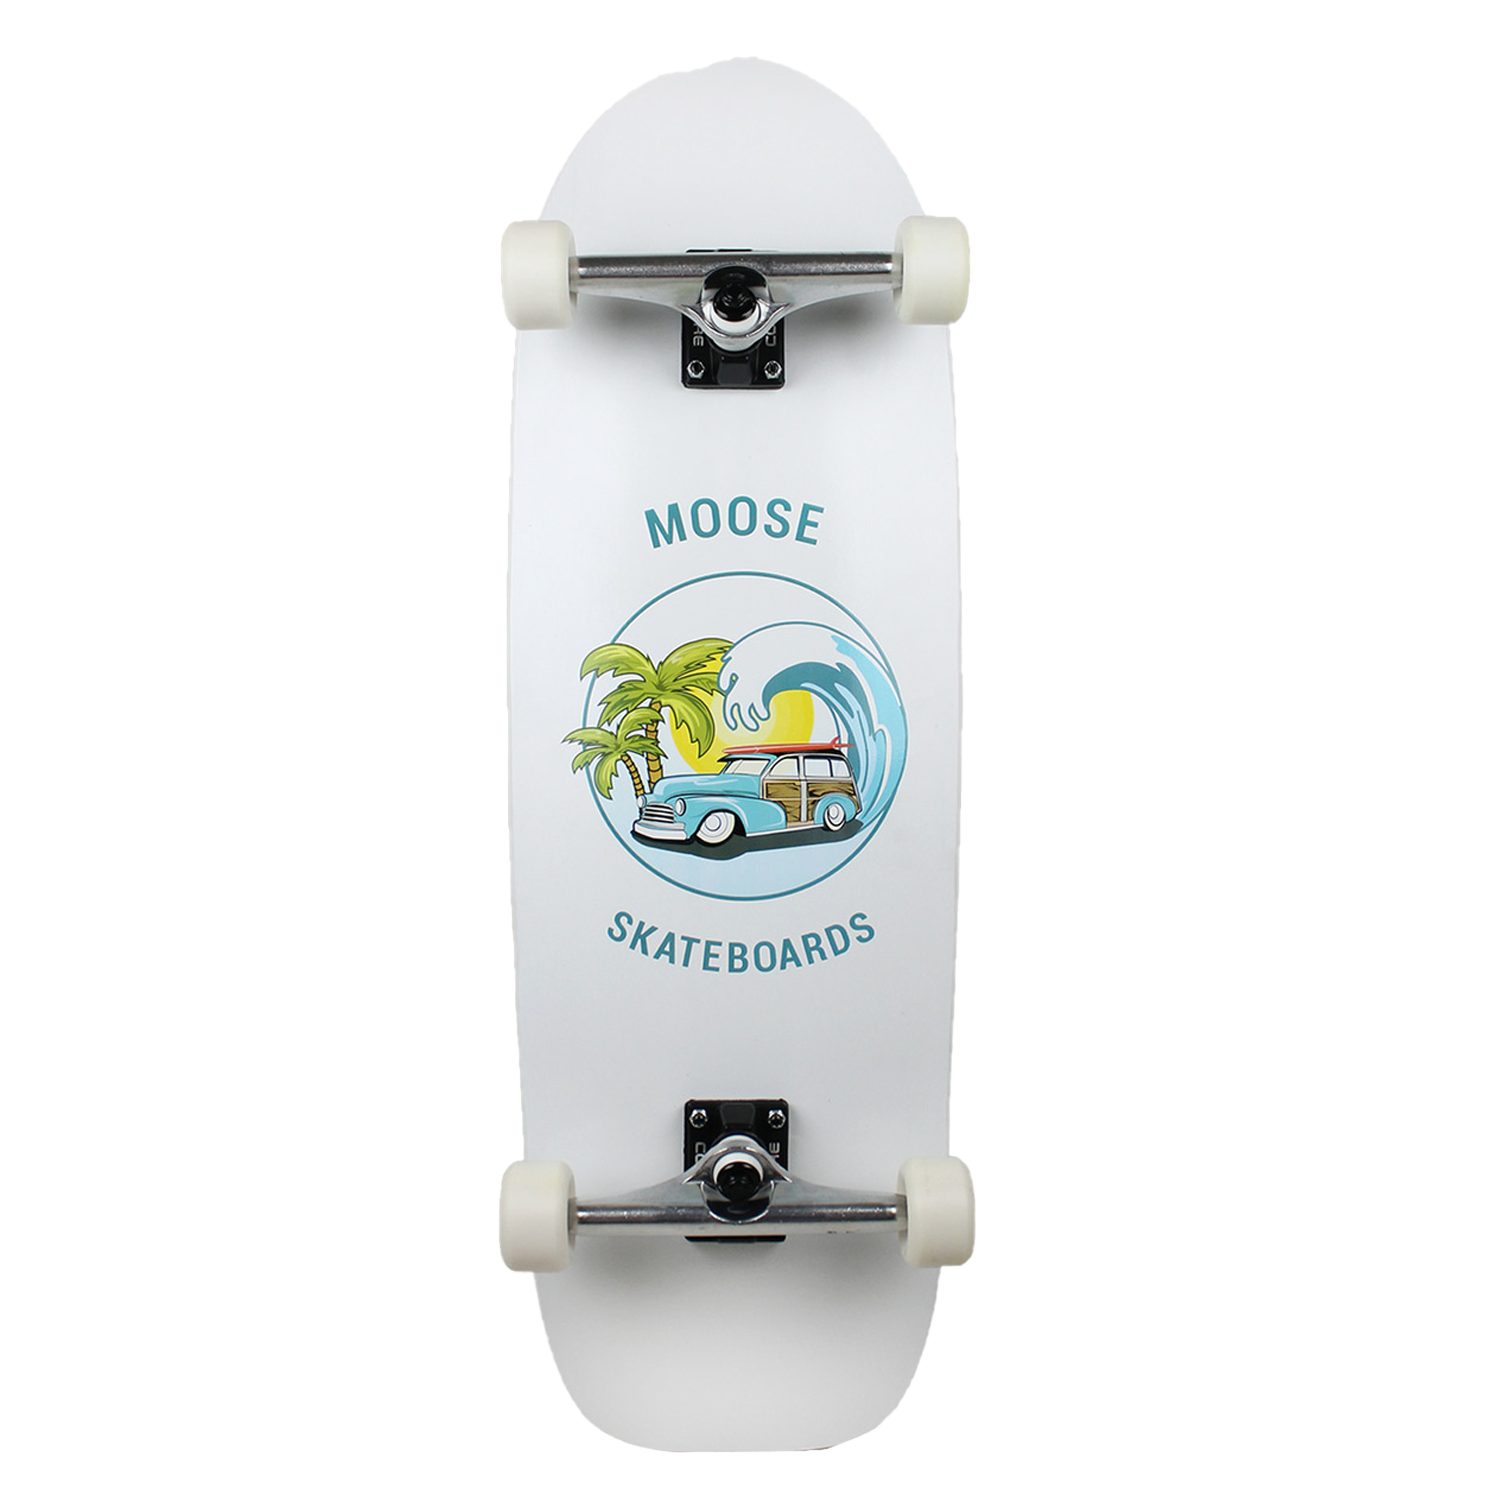 Moose Skateboard Old School Complete Cruise Green Yellow 10in x 33in